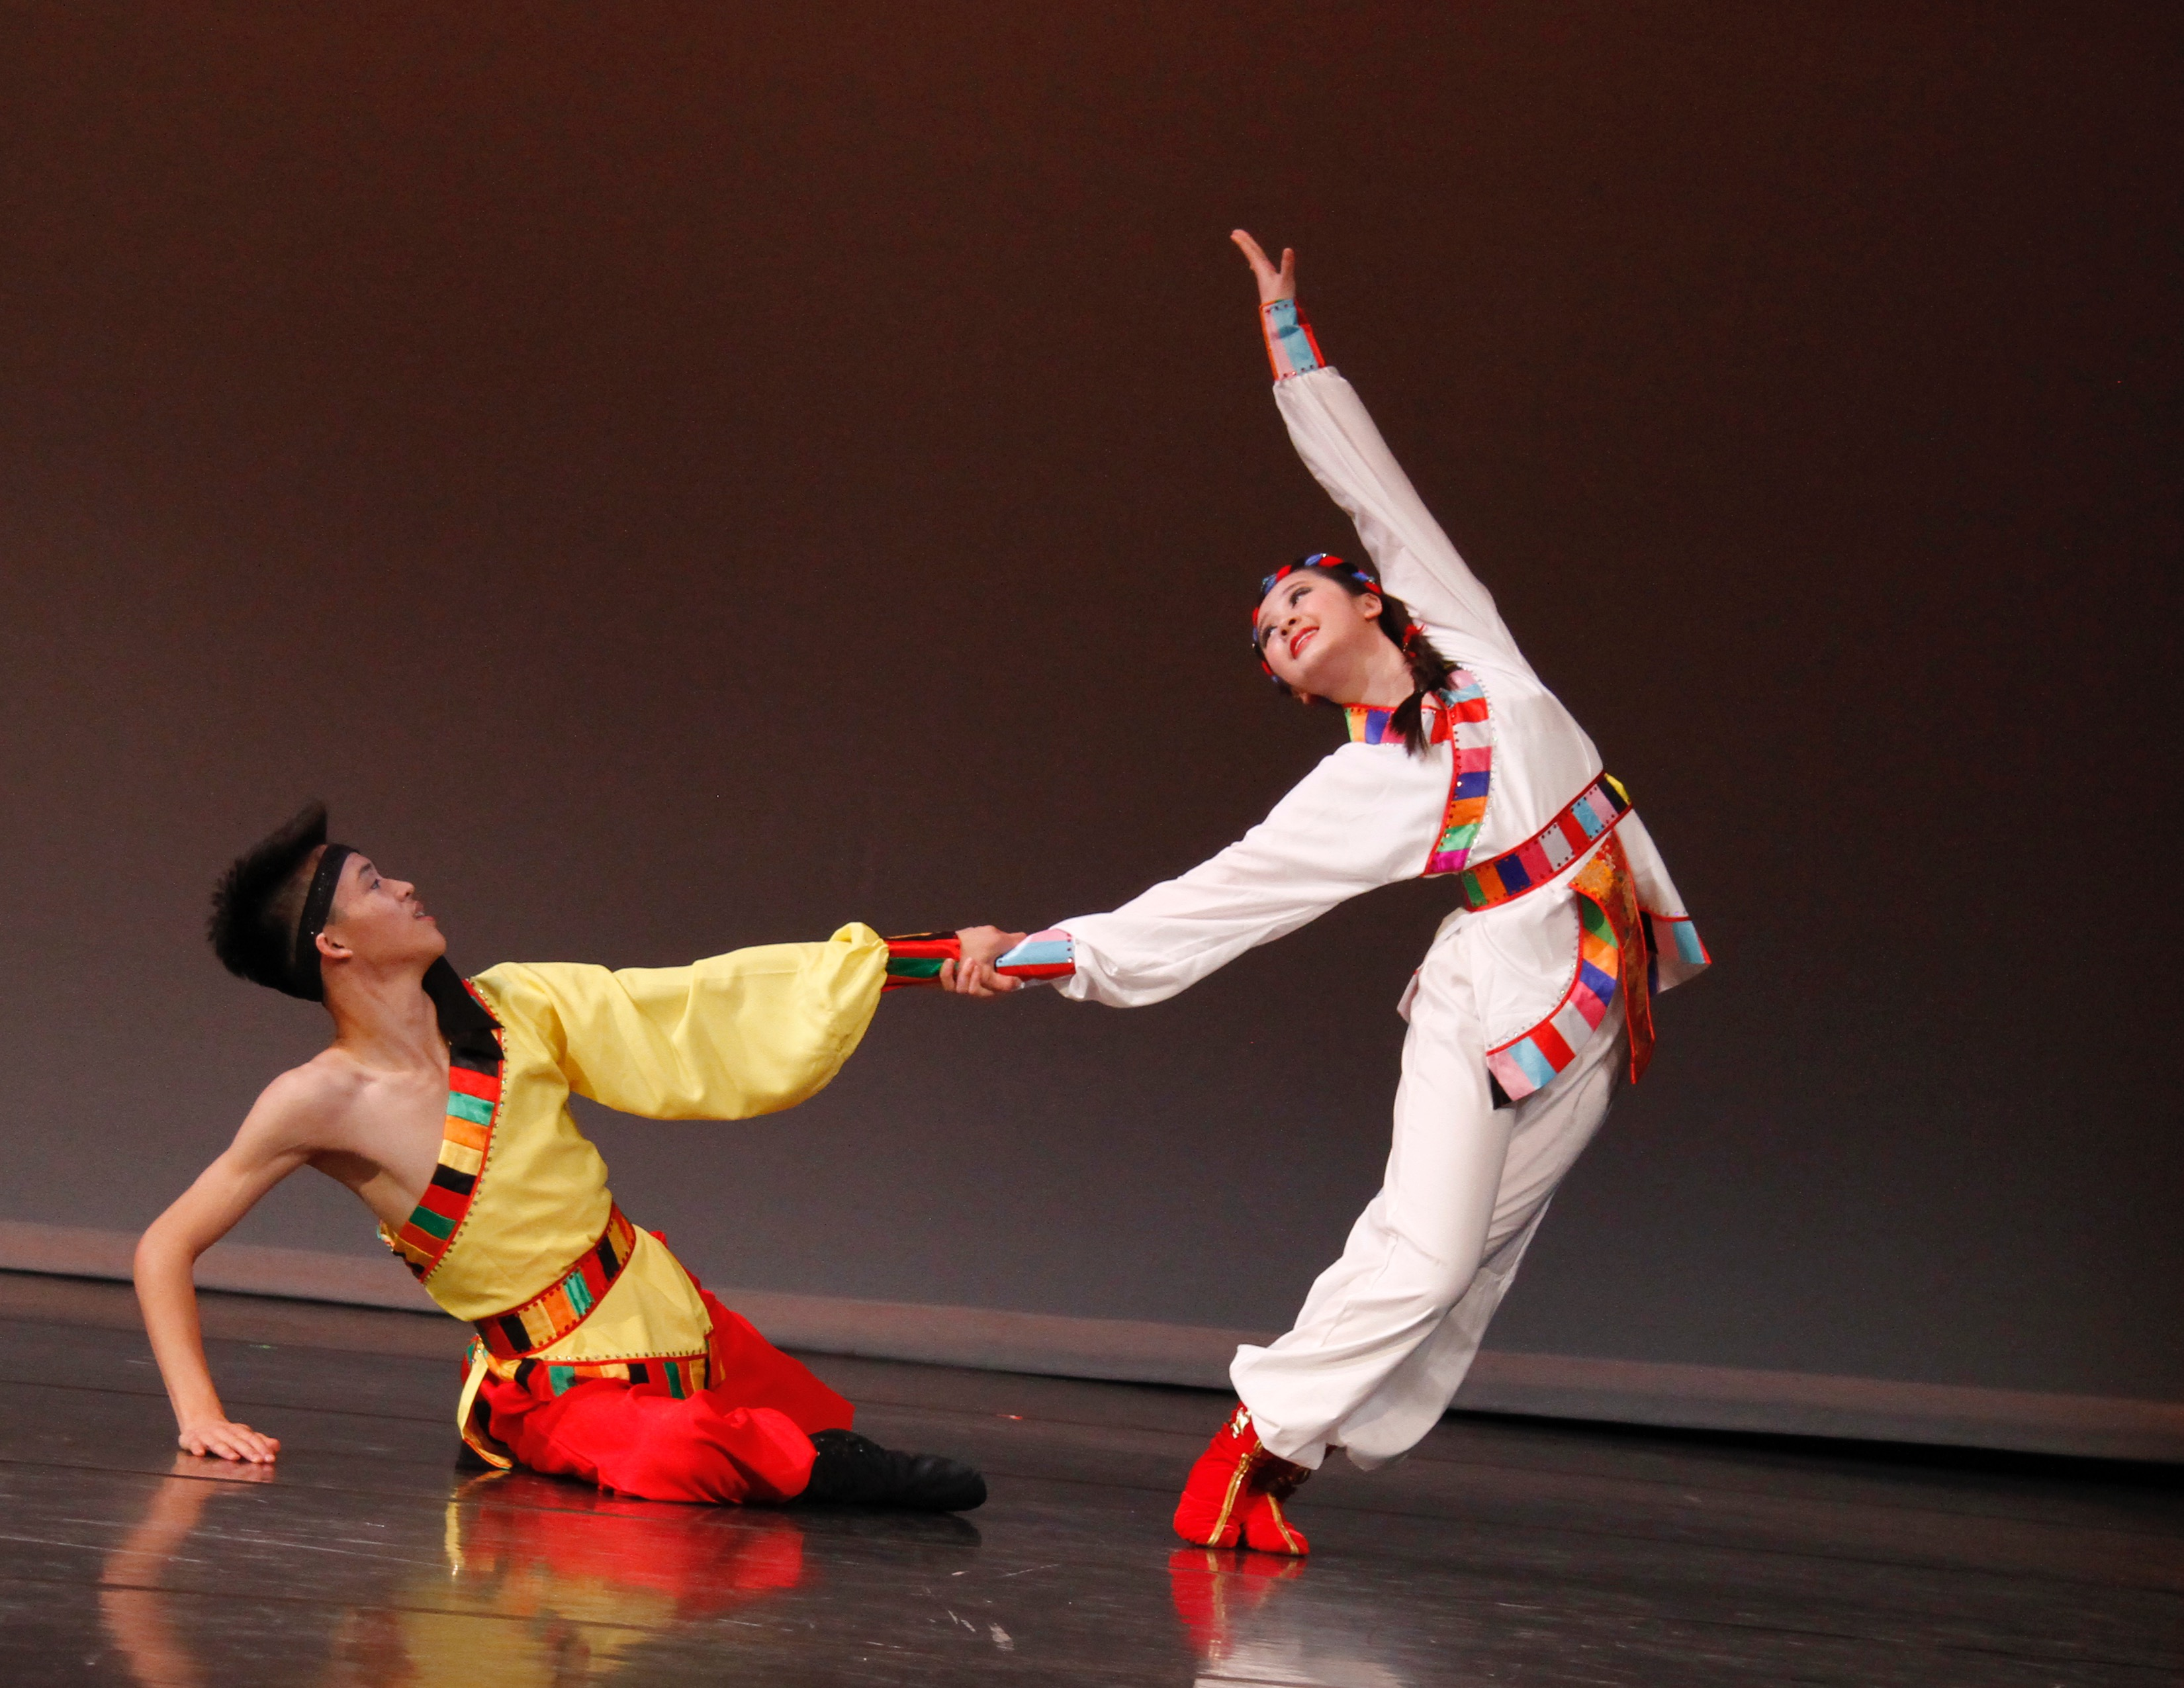 dance history 10 fun facts about dancing  dance is an integral part of the live and recorded performing arts and cultural industries it is often collaborative and provides .